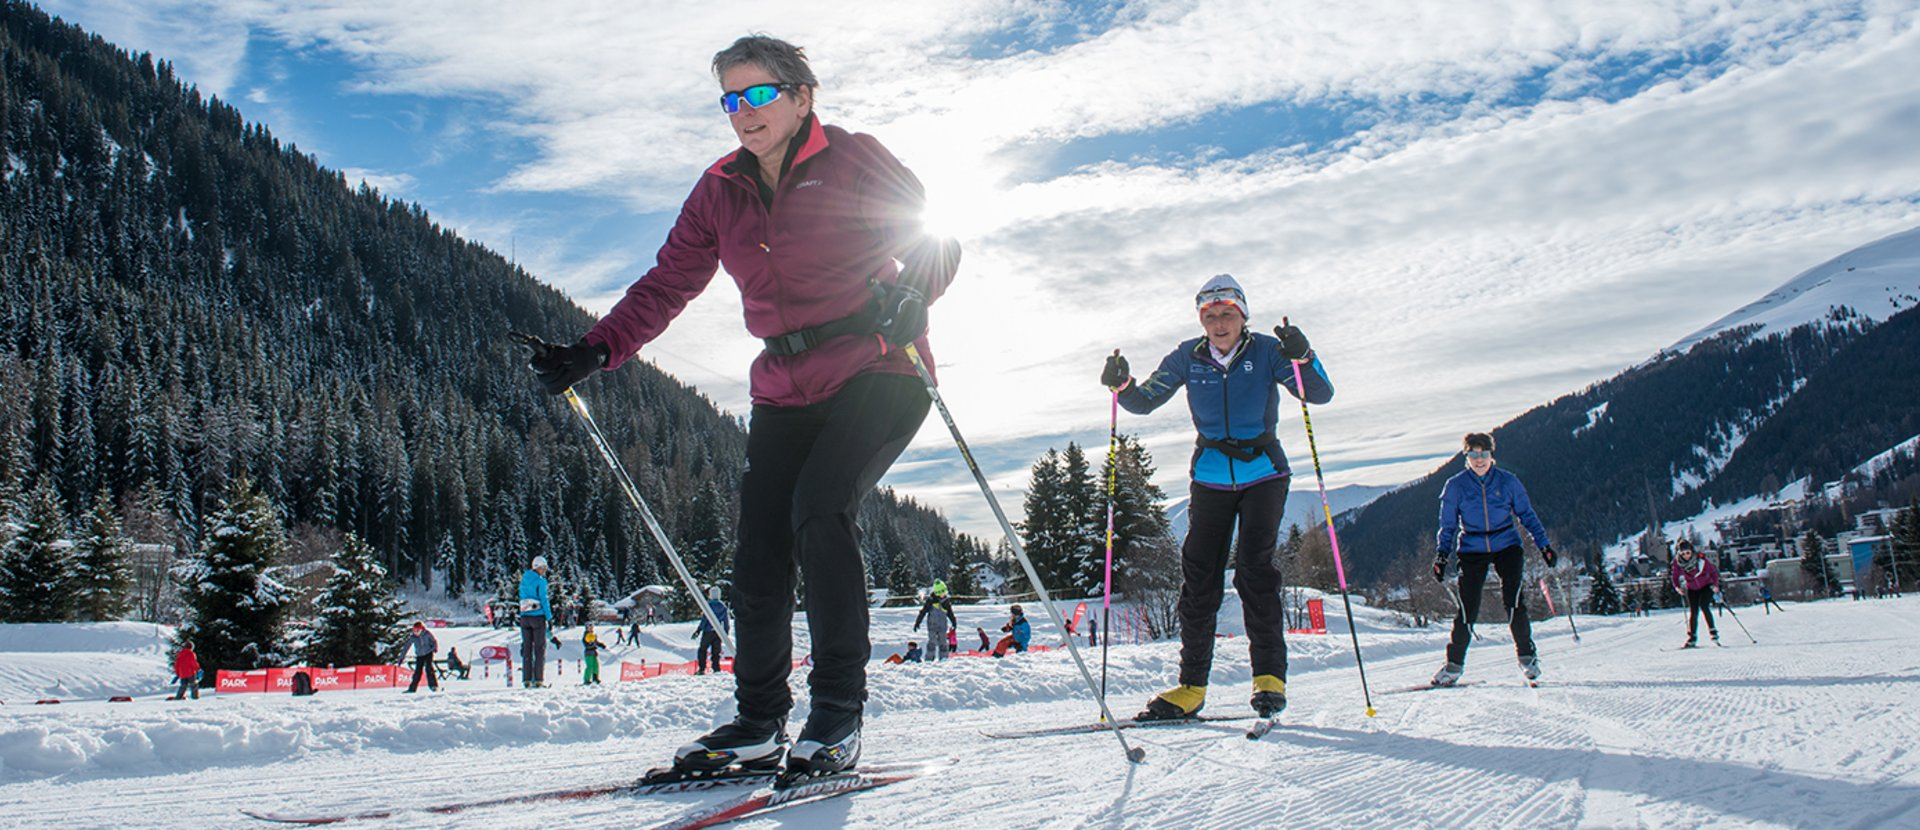 Cross-country skiing events